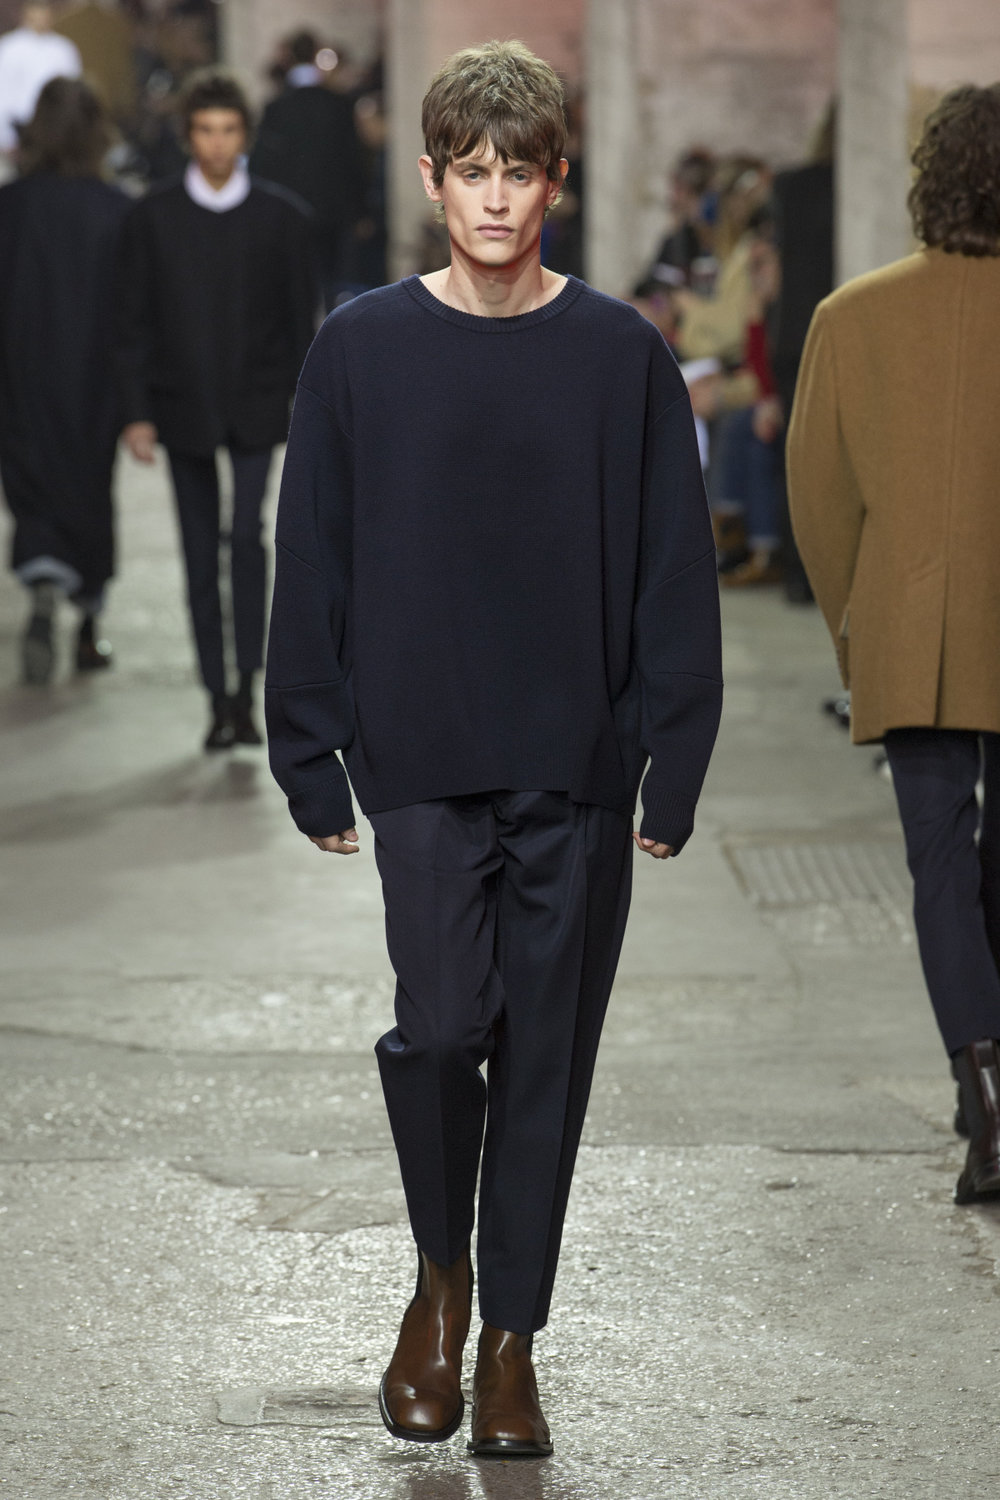 dries_van_noten_look_6_2017_aw_mens.jpeg